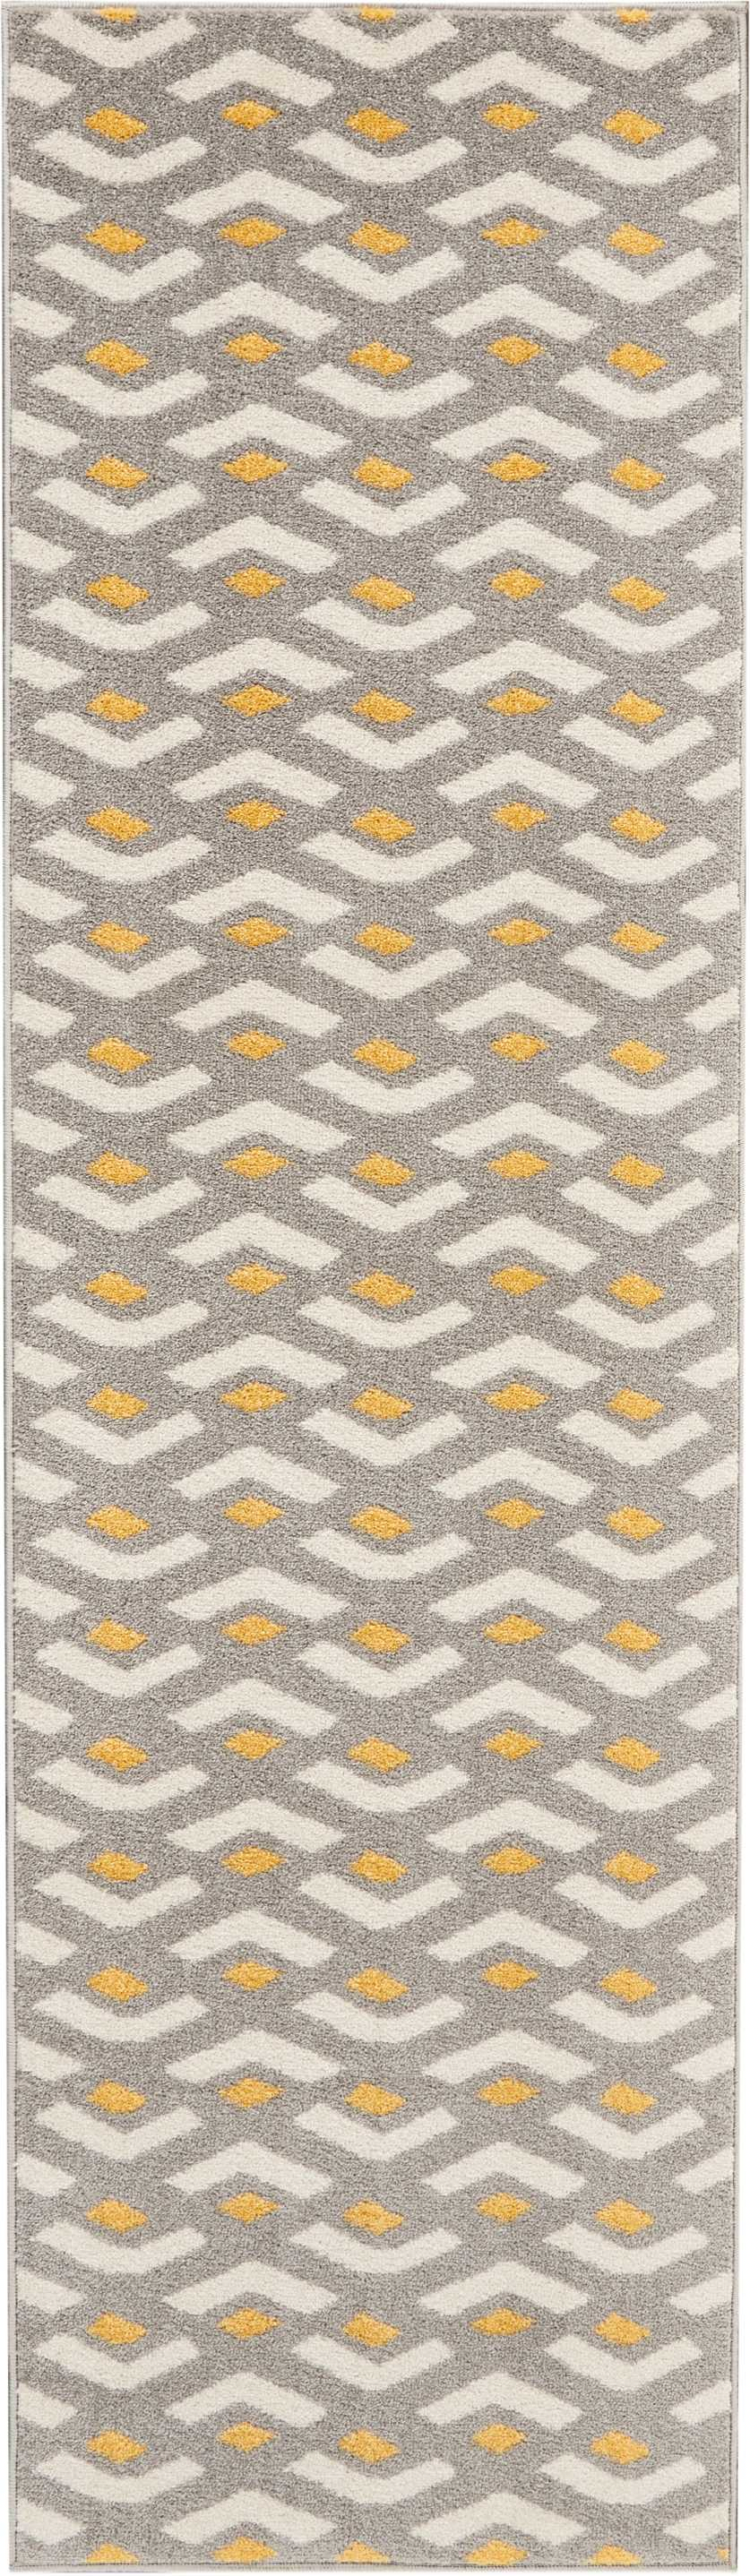 Nourison Harper DS300 Grey 8' Runner Hallway Rug DS300 Grey